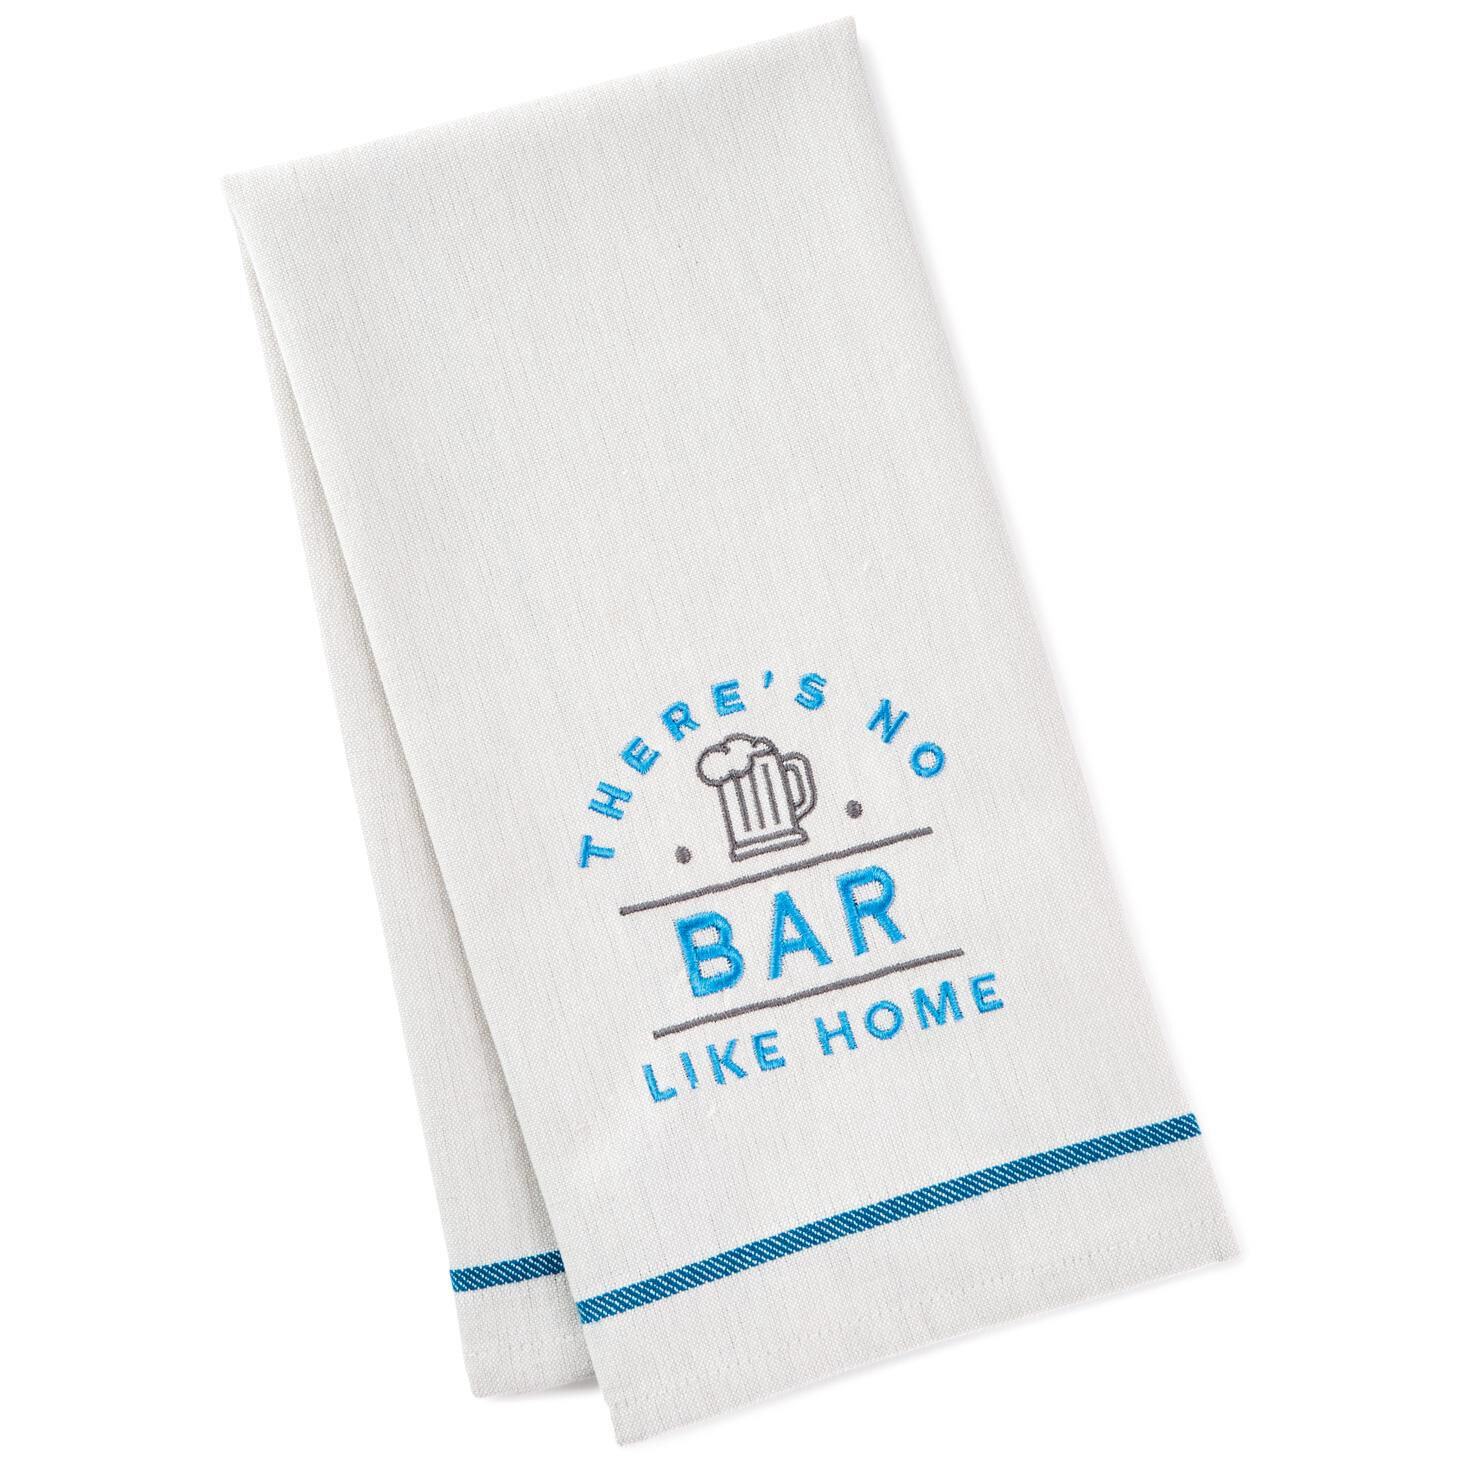 There's No Bar Like Home Embroidered Bar Towel